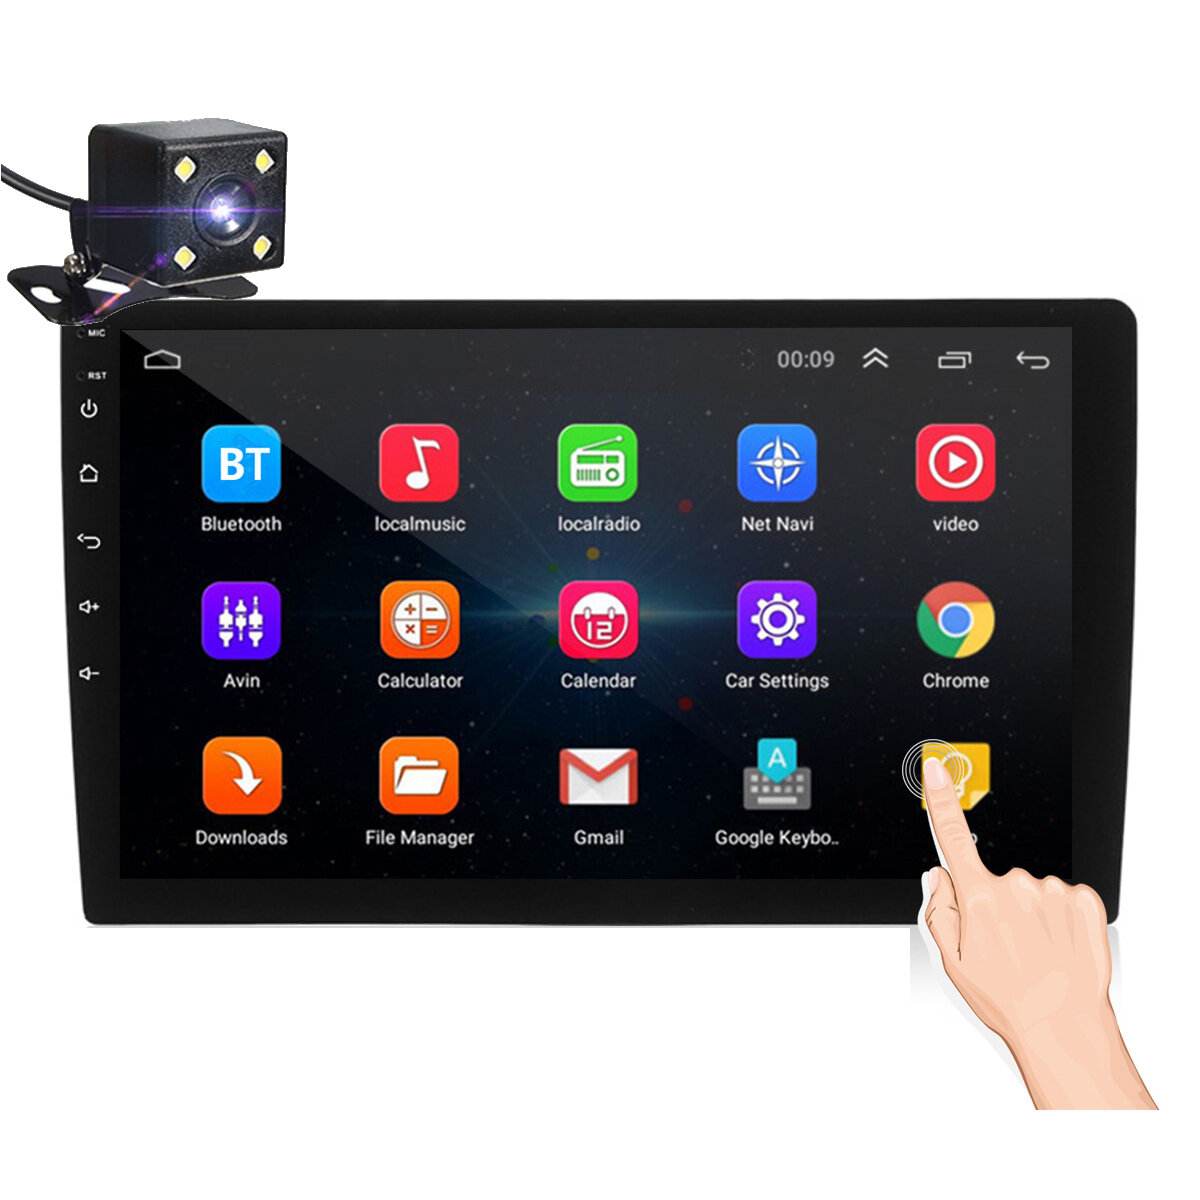 iMars 10.1 Inch 2Din for Android 8.1 Car Stereo Radio 1 + 16G IPS 2.5D Touch Screen MP5 Player GPS WIFI FM with Backup Camera